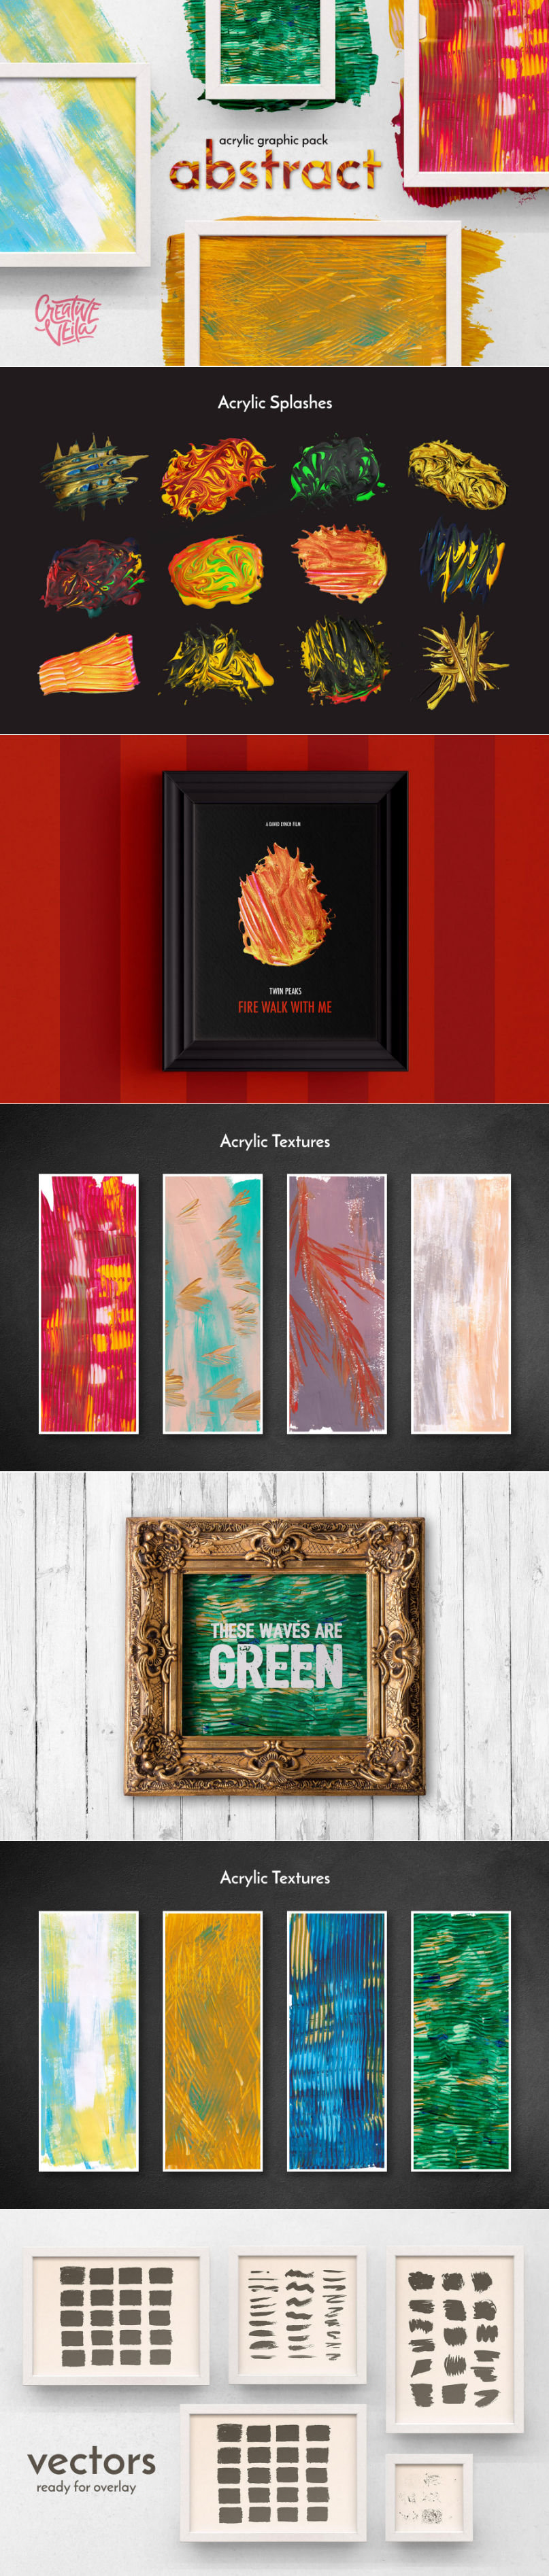 Free Abstract Acrylic Graphic Pack